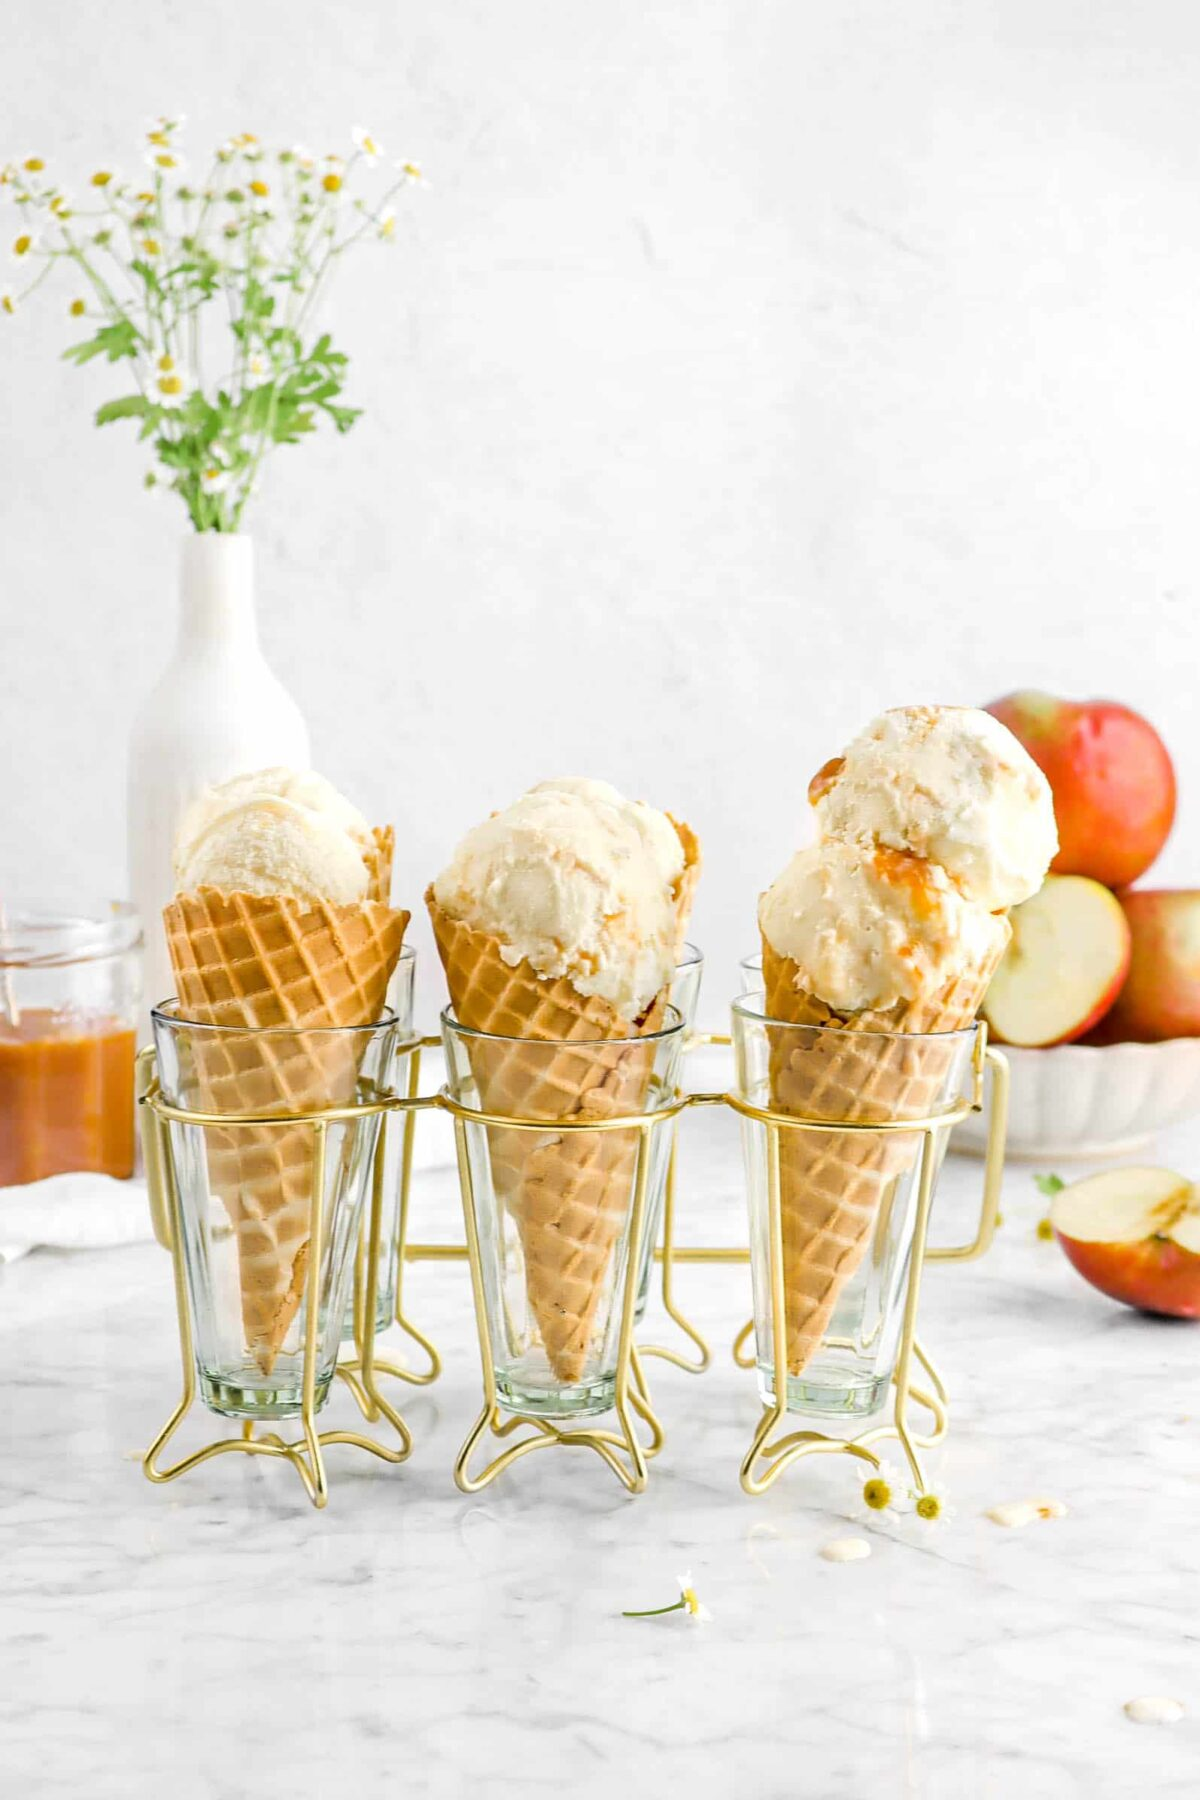 caramel apple ice cream in drink caddy with apples and flowers behind